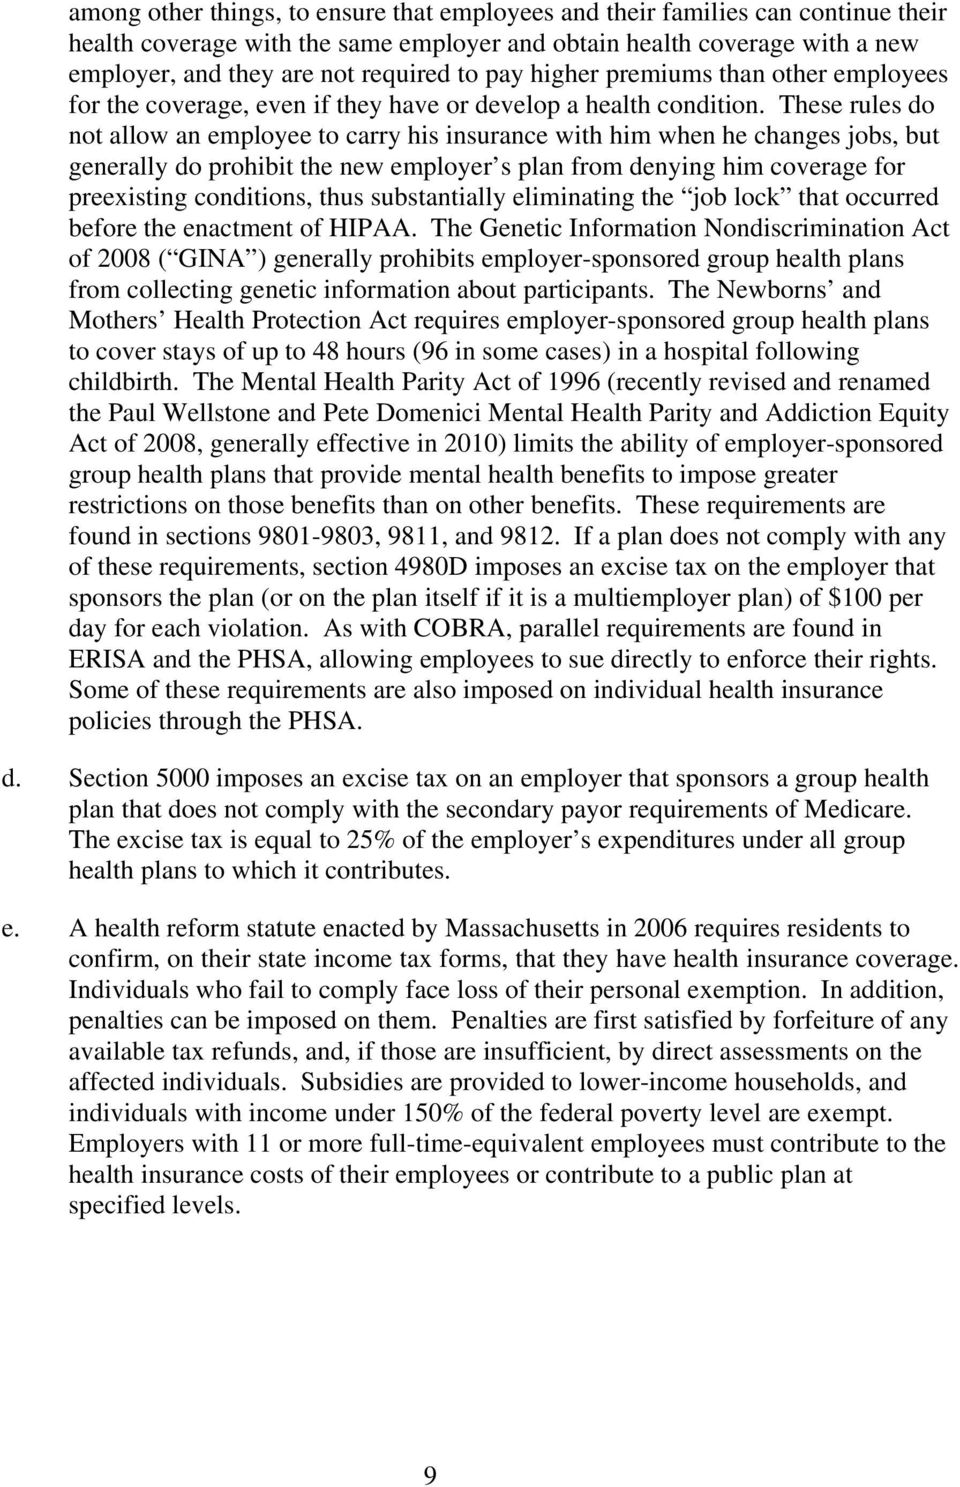 These rules do not allow an employee to carry his insurance with him when he changes jobs, but generally do prohibit the new employer s plan from denying him coverage for preexisting conditions, thus